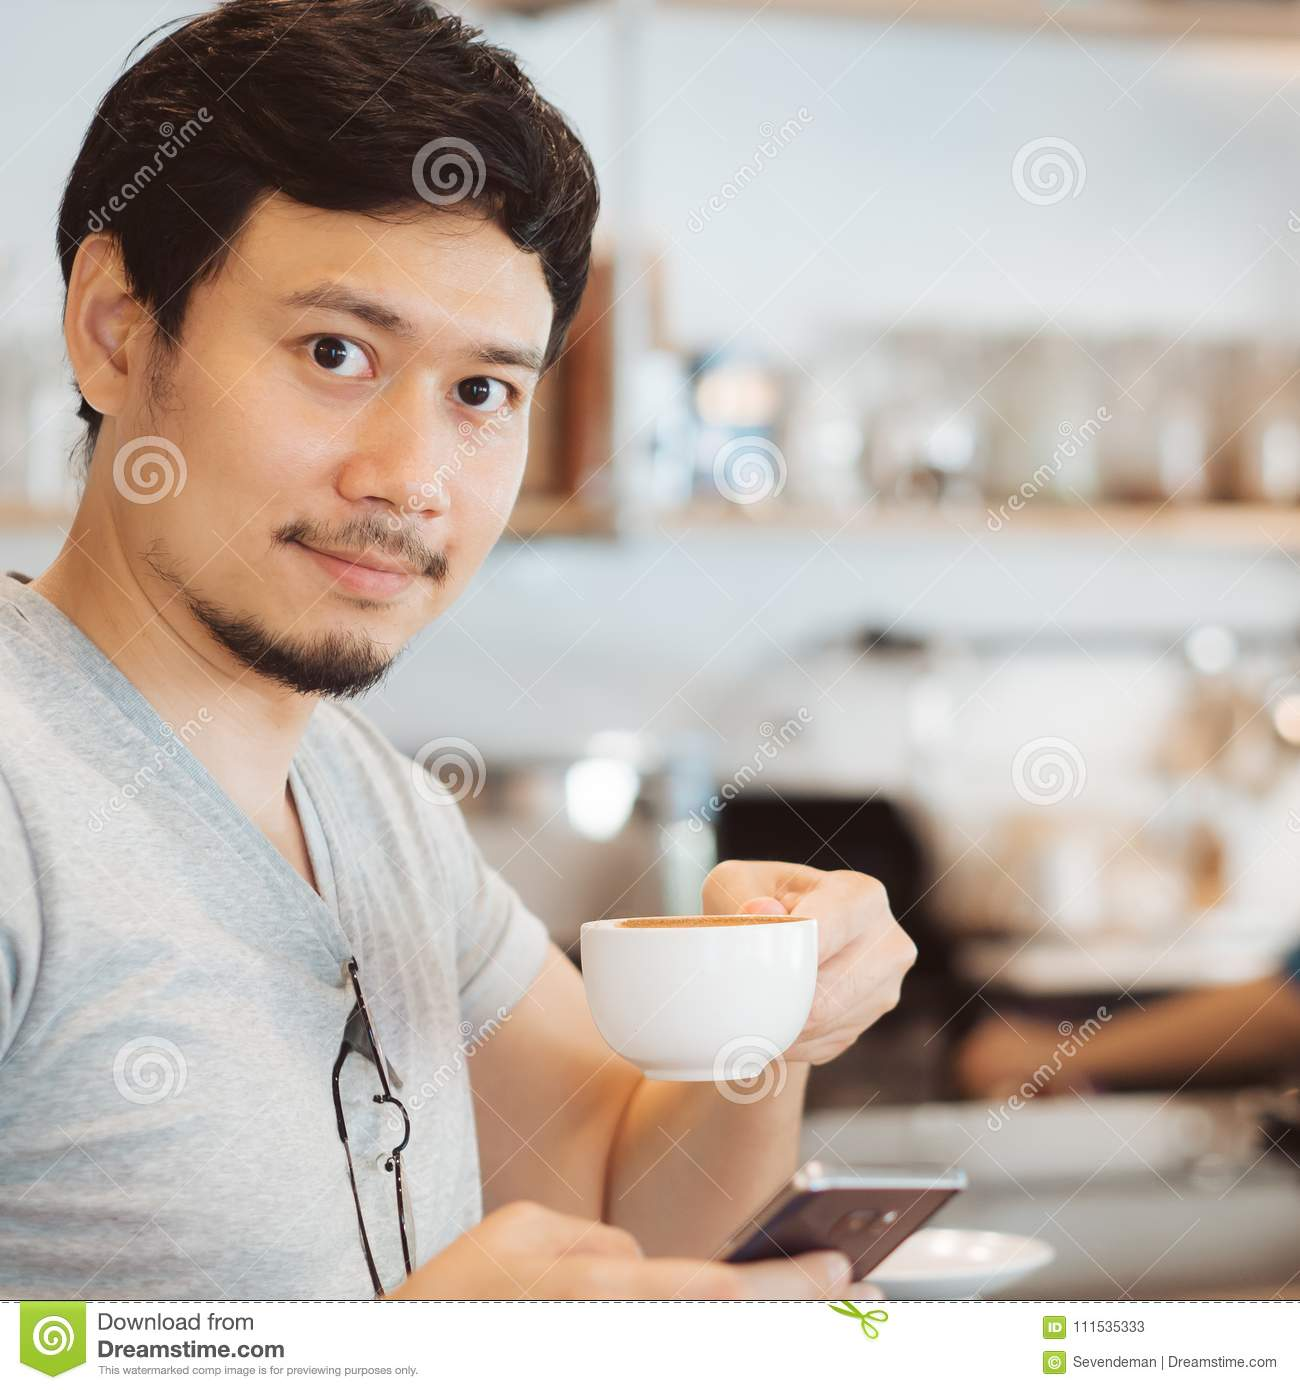 Man is drinking hot coffee in the coffee cafe.